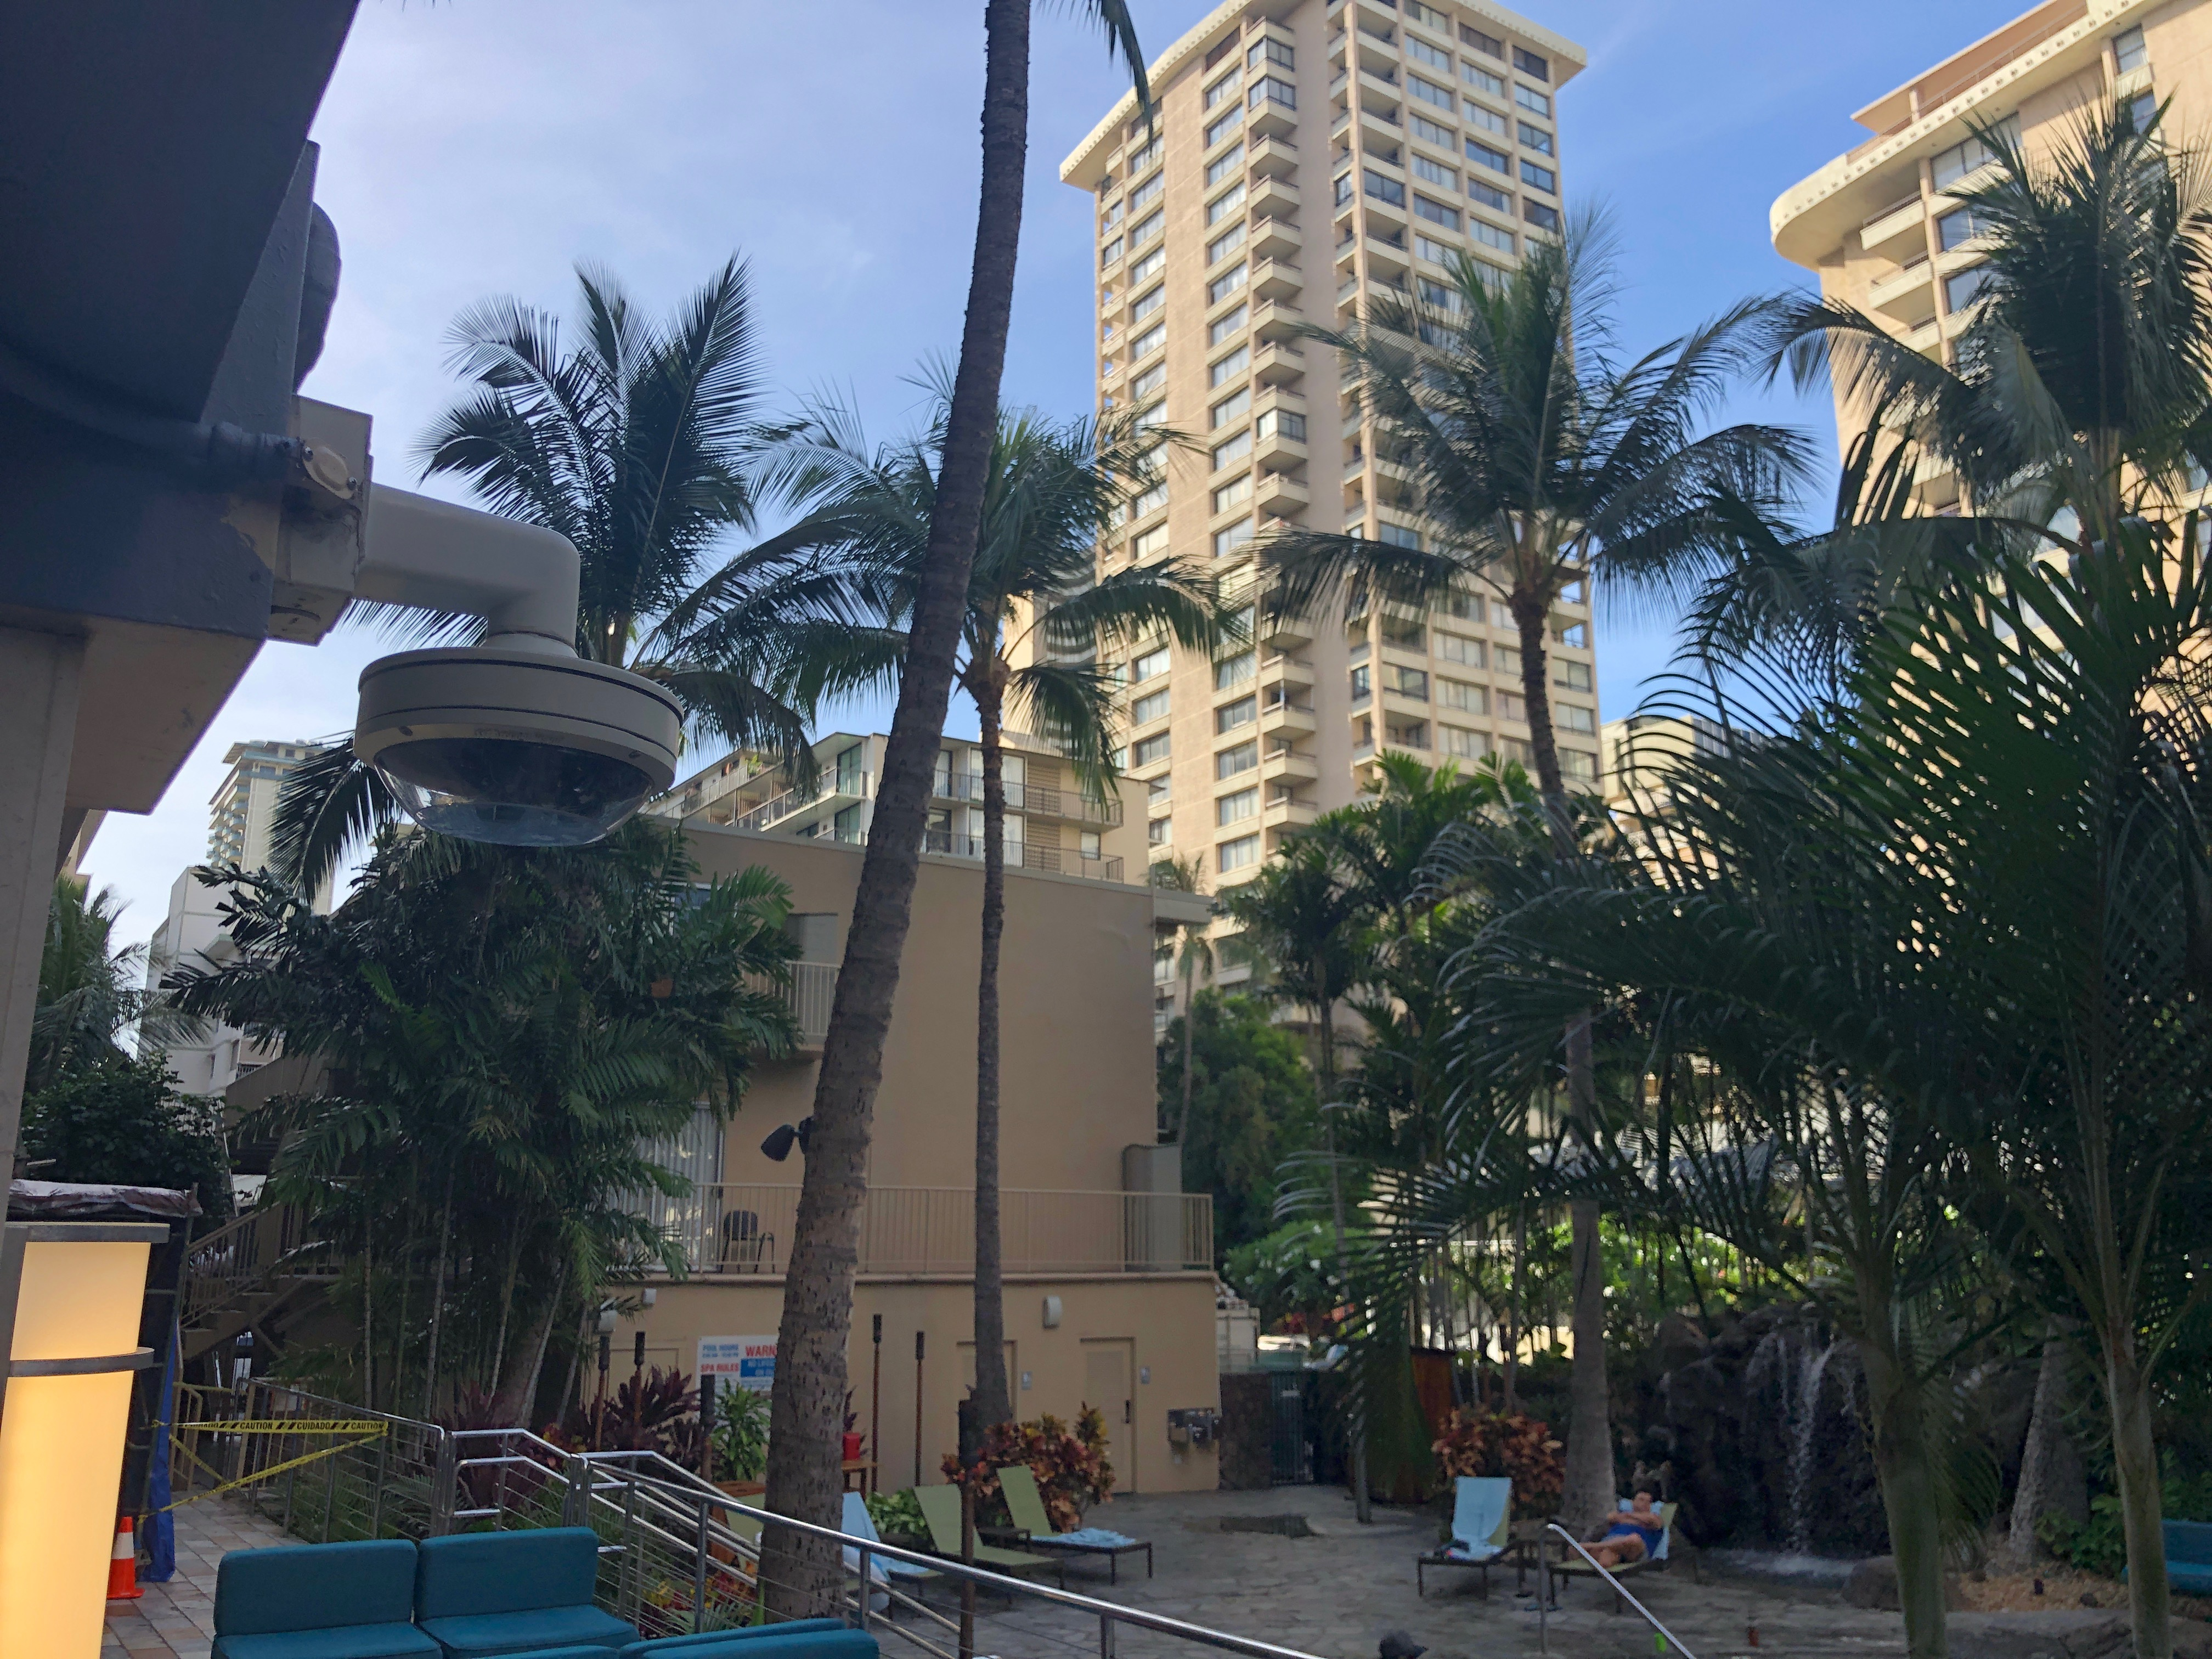 Courtyard Marriott Hotel, Waikiki, Honolulu, Hawaii